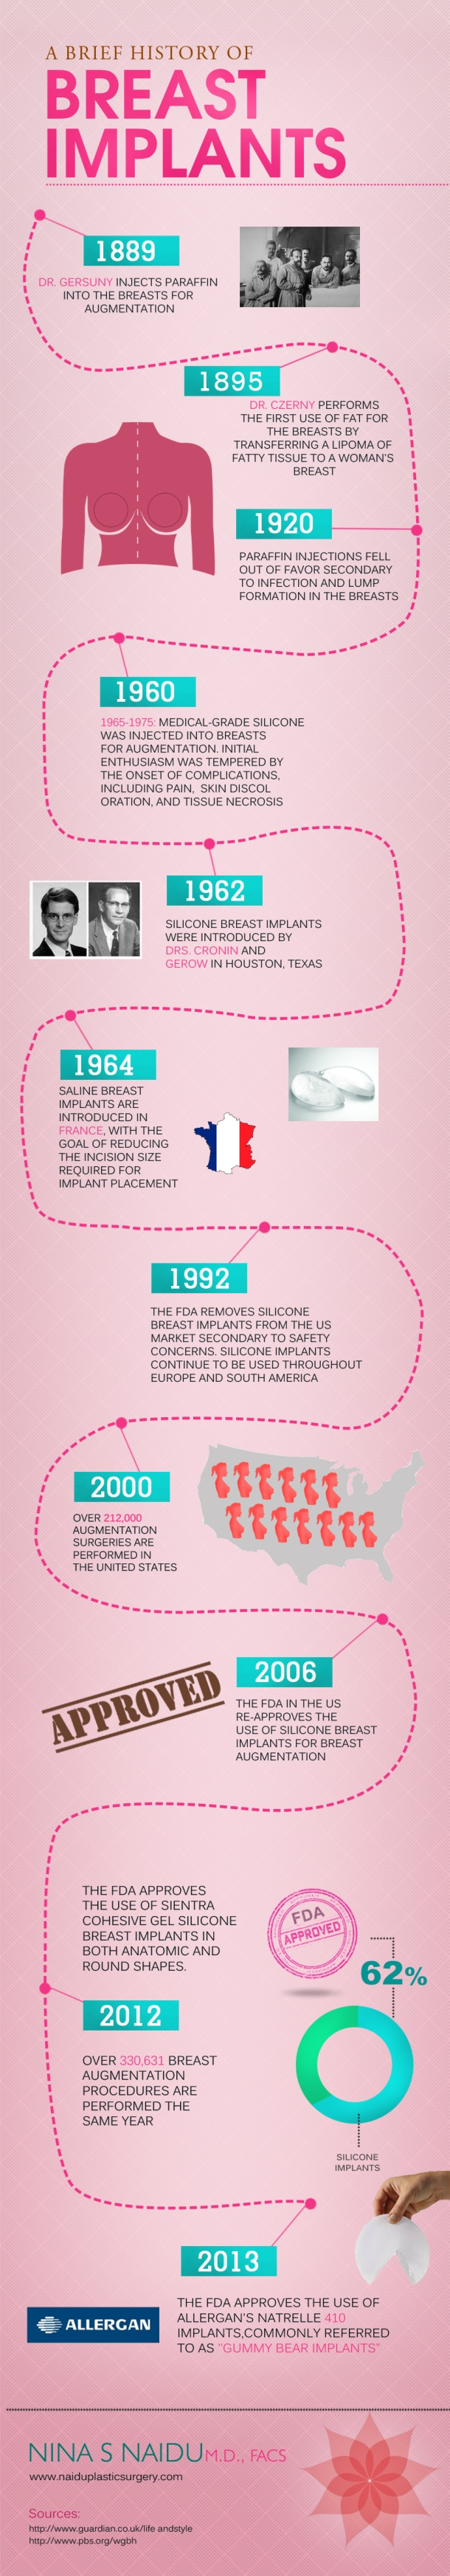 a-brief-history-of-breast-implants_52605fa16672e